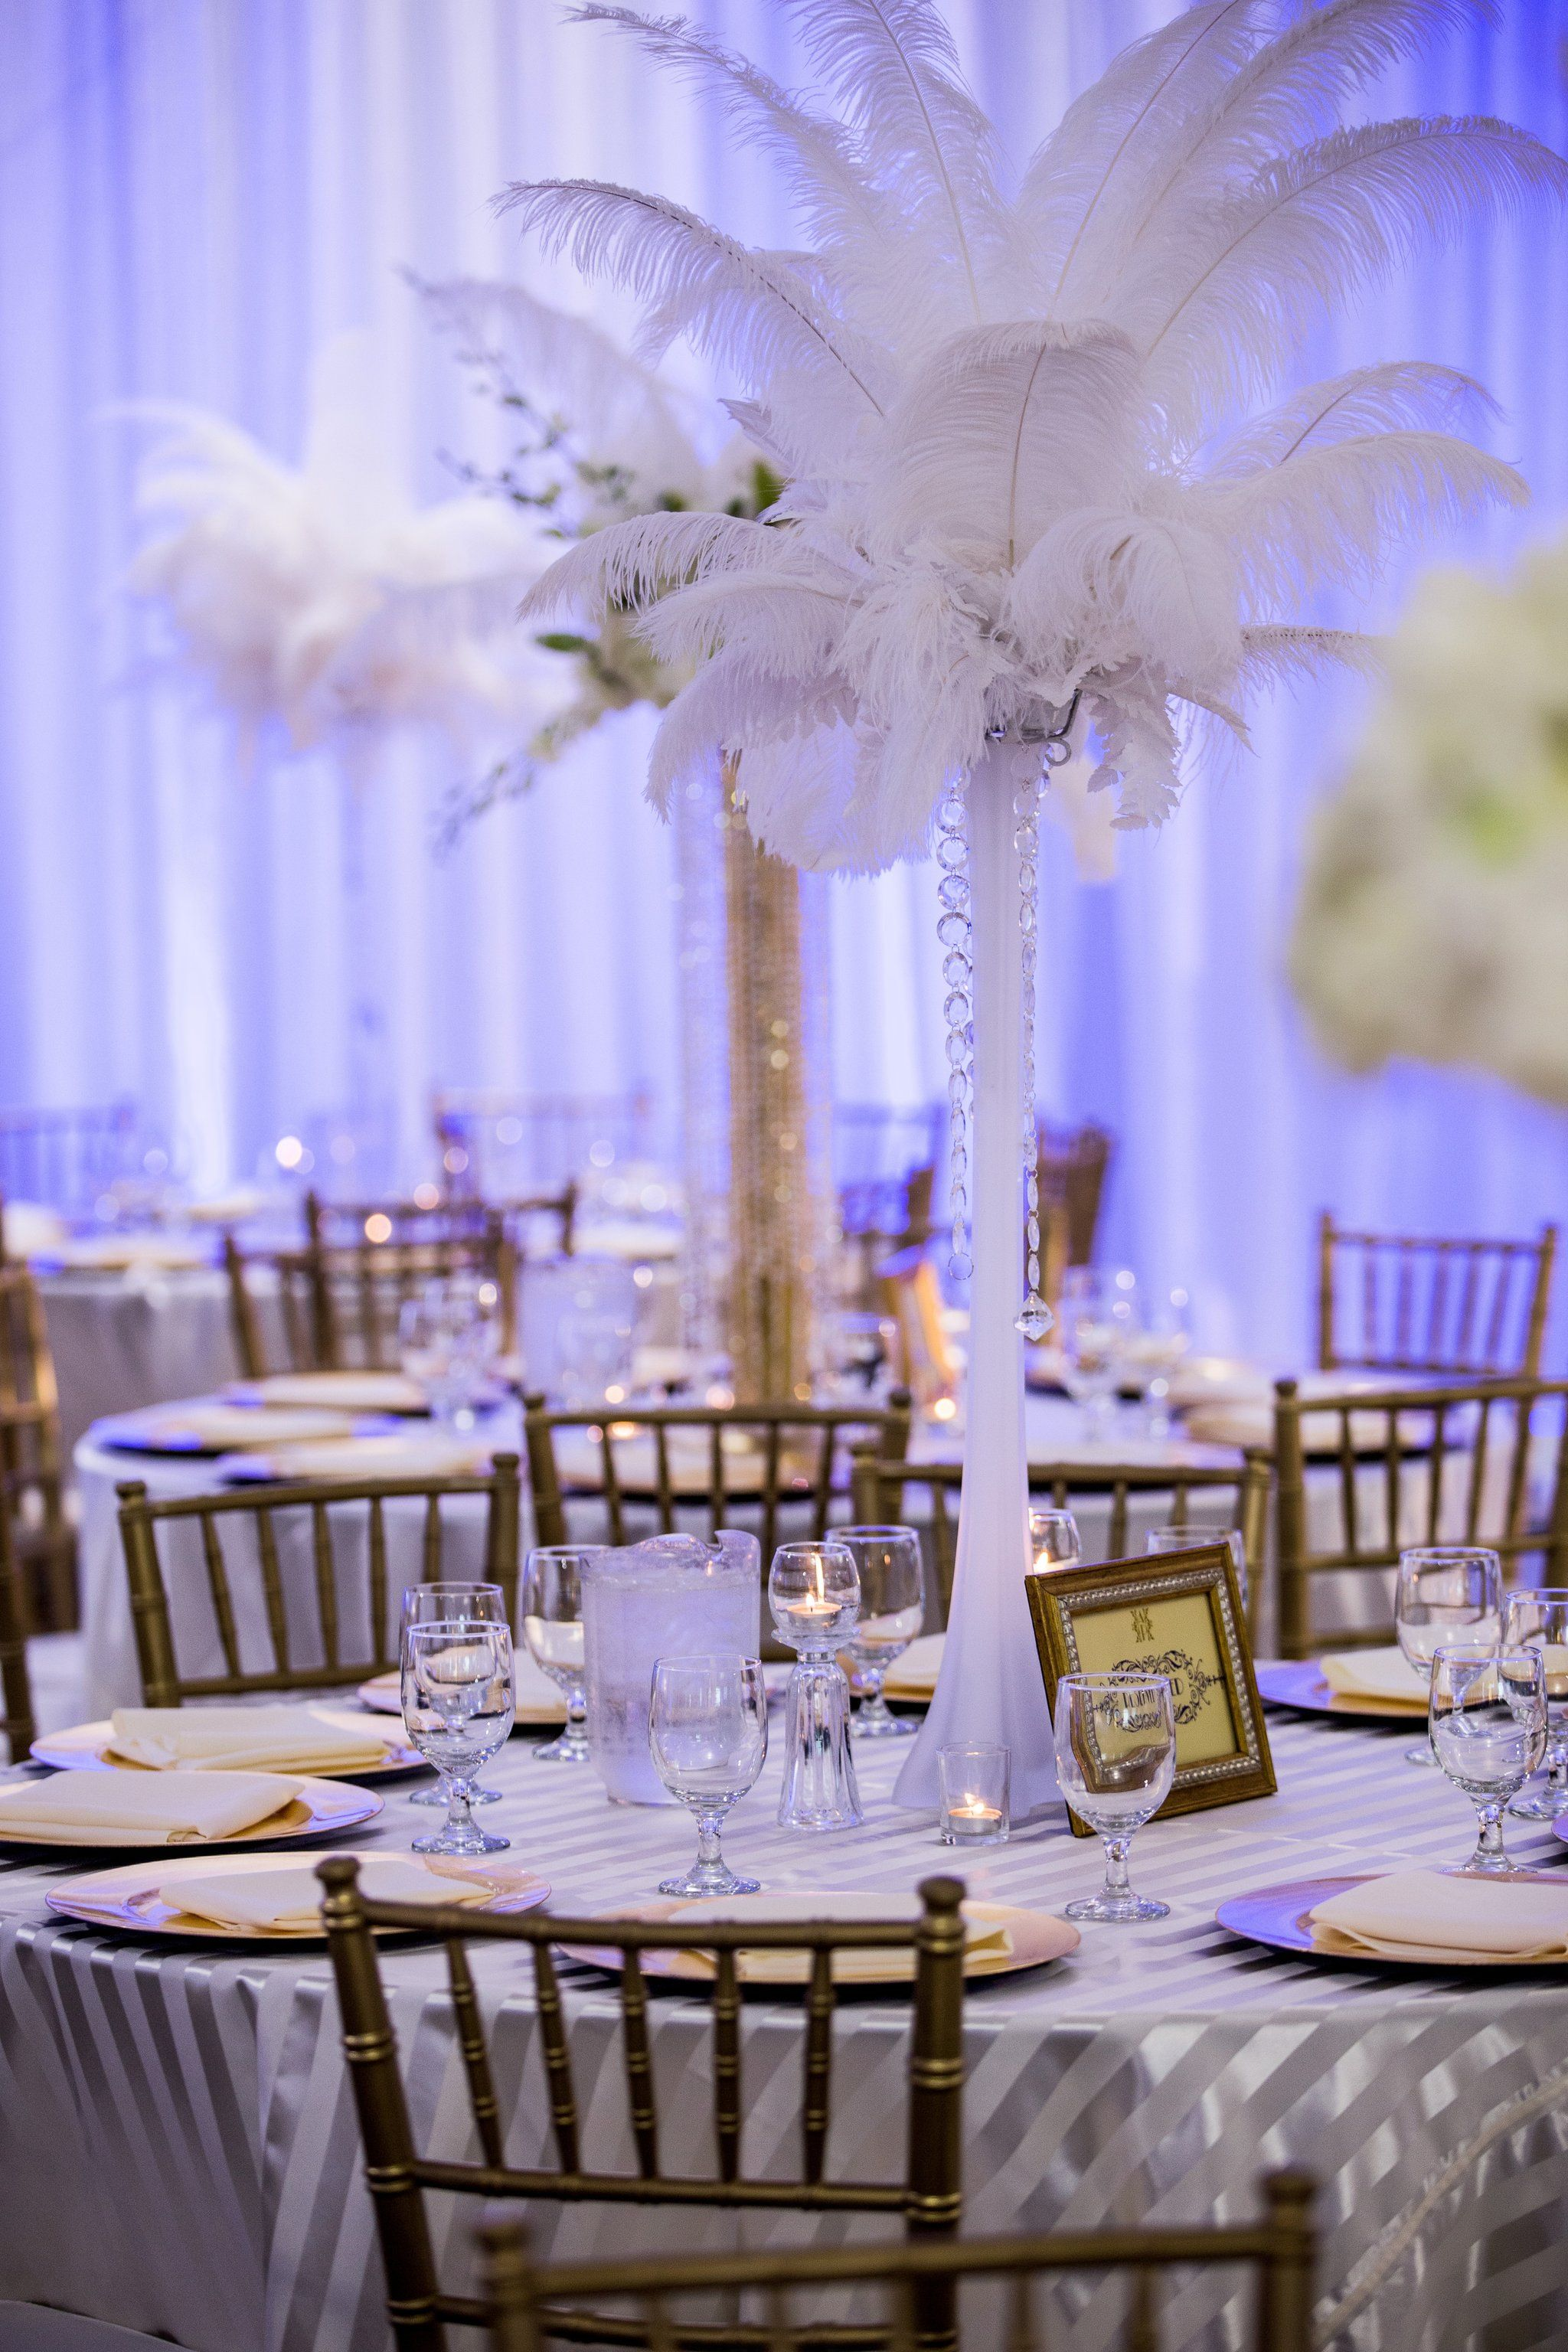 1920s wedding decoration ideas  How to Throw a s Wedding Inspired by The Great Gatsby  Gatsby